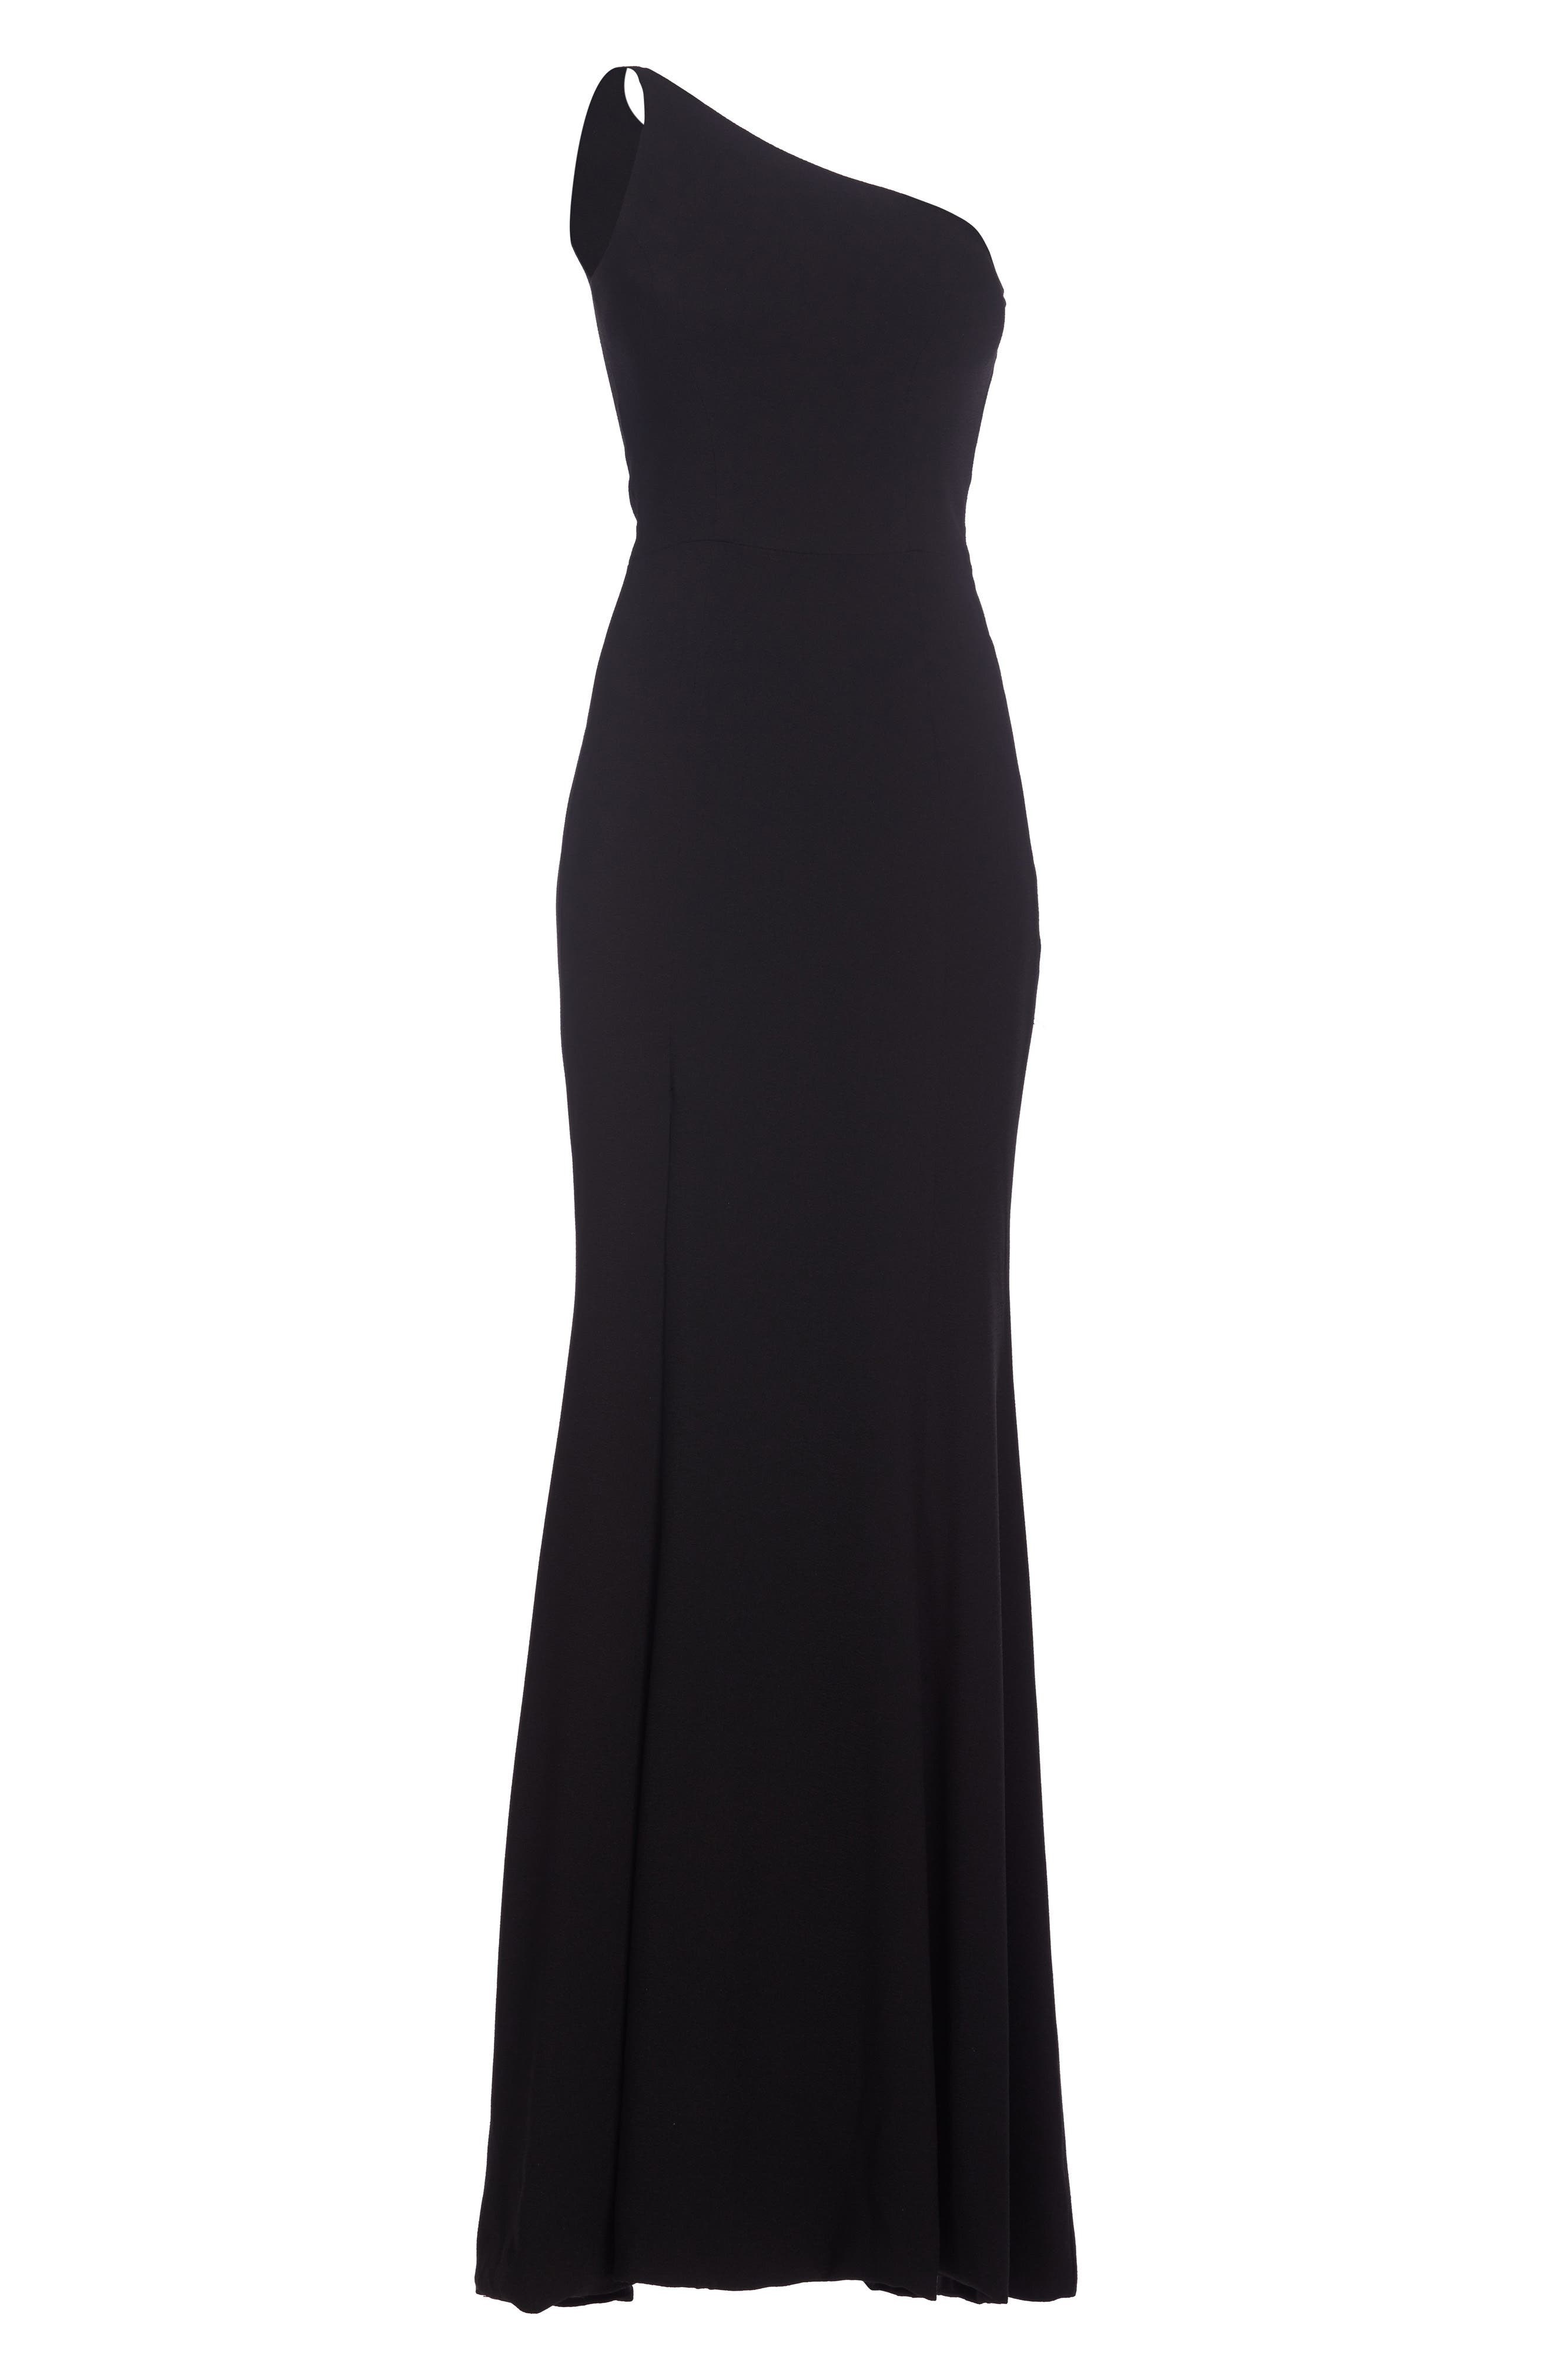 DRESS THE POPULATION,                             Amy One-Shoulder Crepe Gown,                             Alternate thumbnail 4, color,                             001